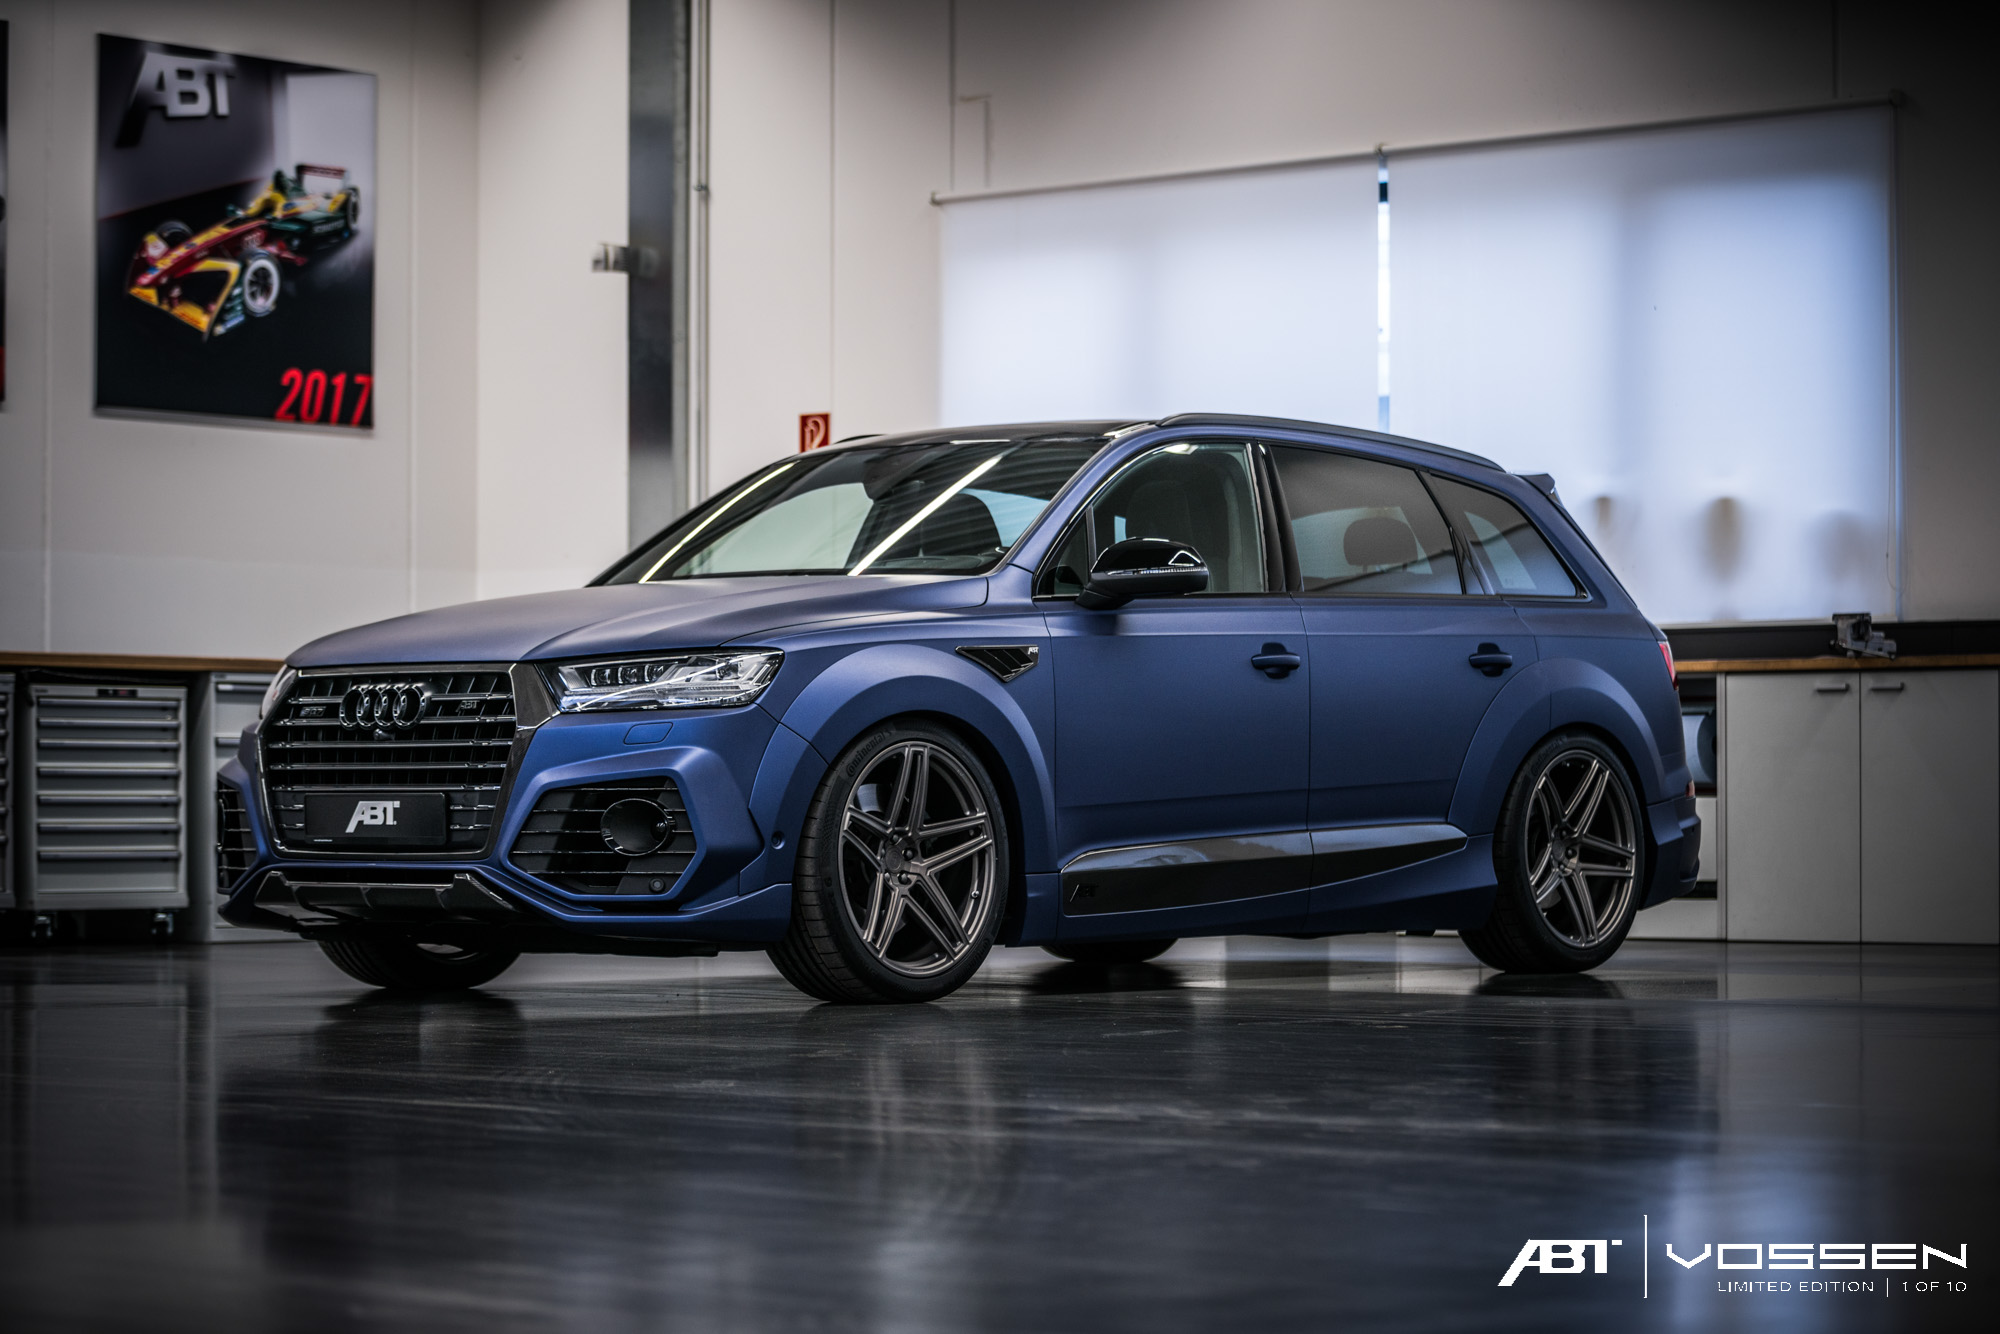 Audi Q7 and SQ7 Get ABT Widebody Kit and Vossen Forged Wheels